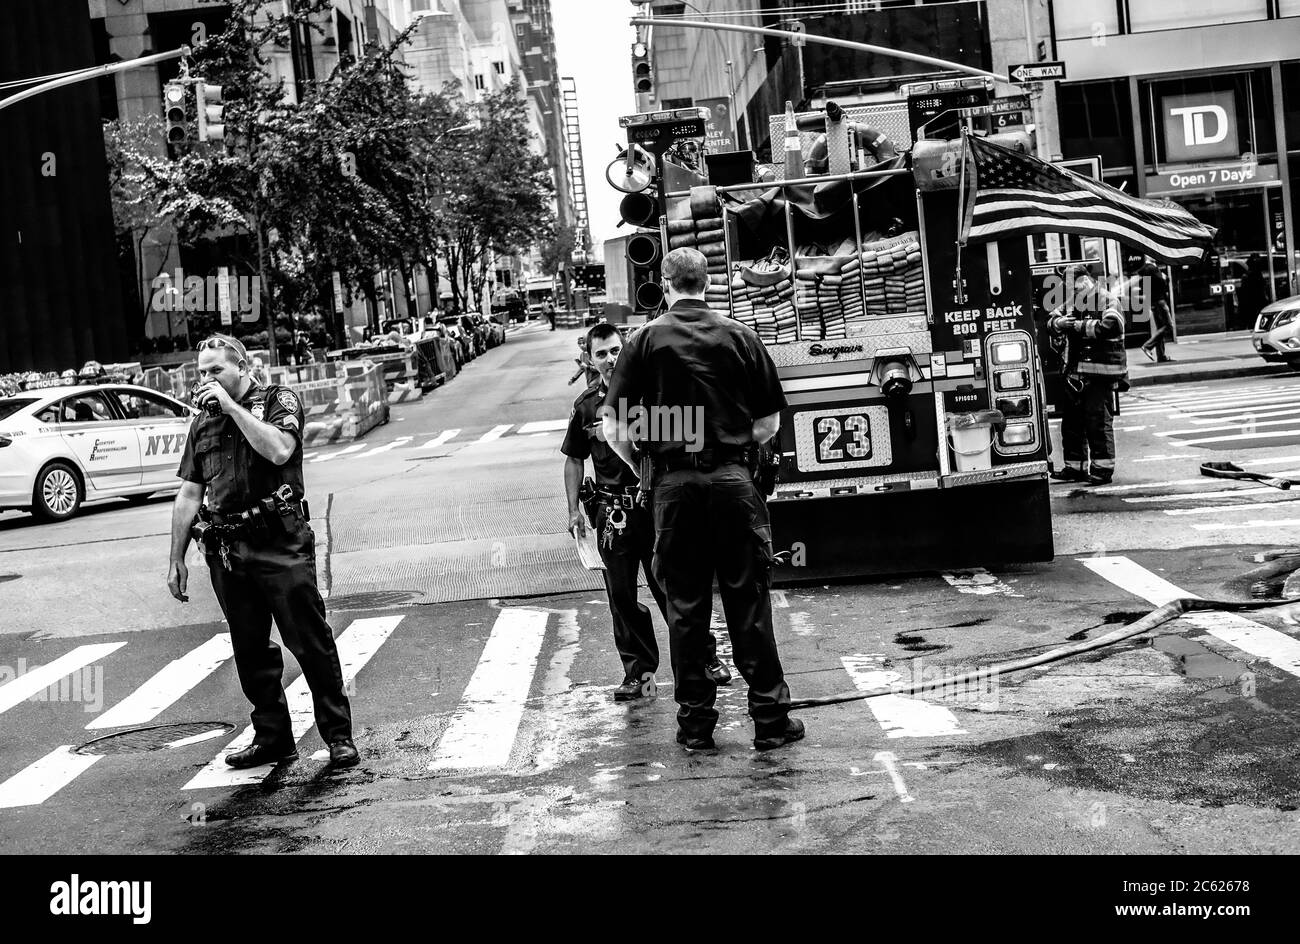 Both NYPD and Fire Department officers attending a fire near a busy New York road. Stock Photo